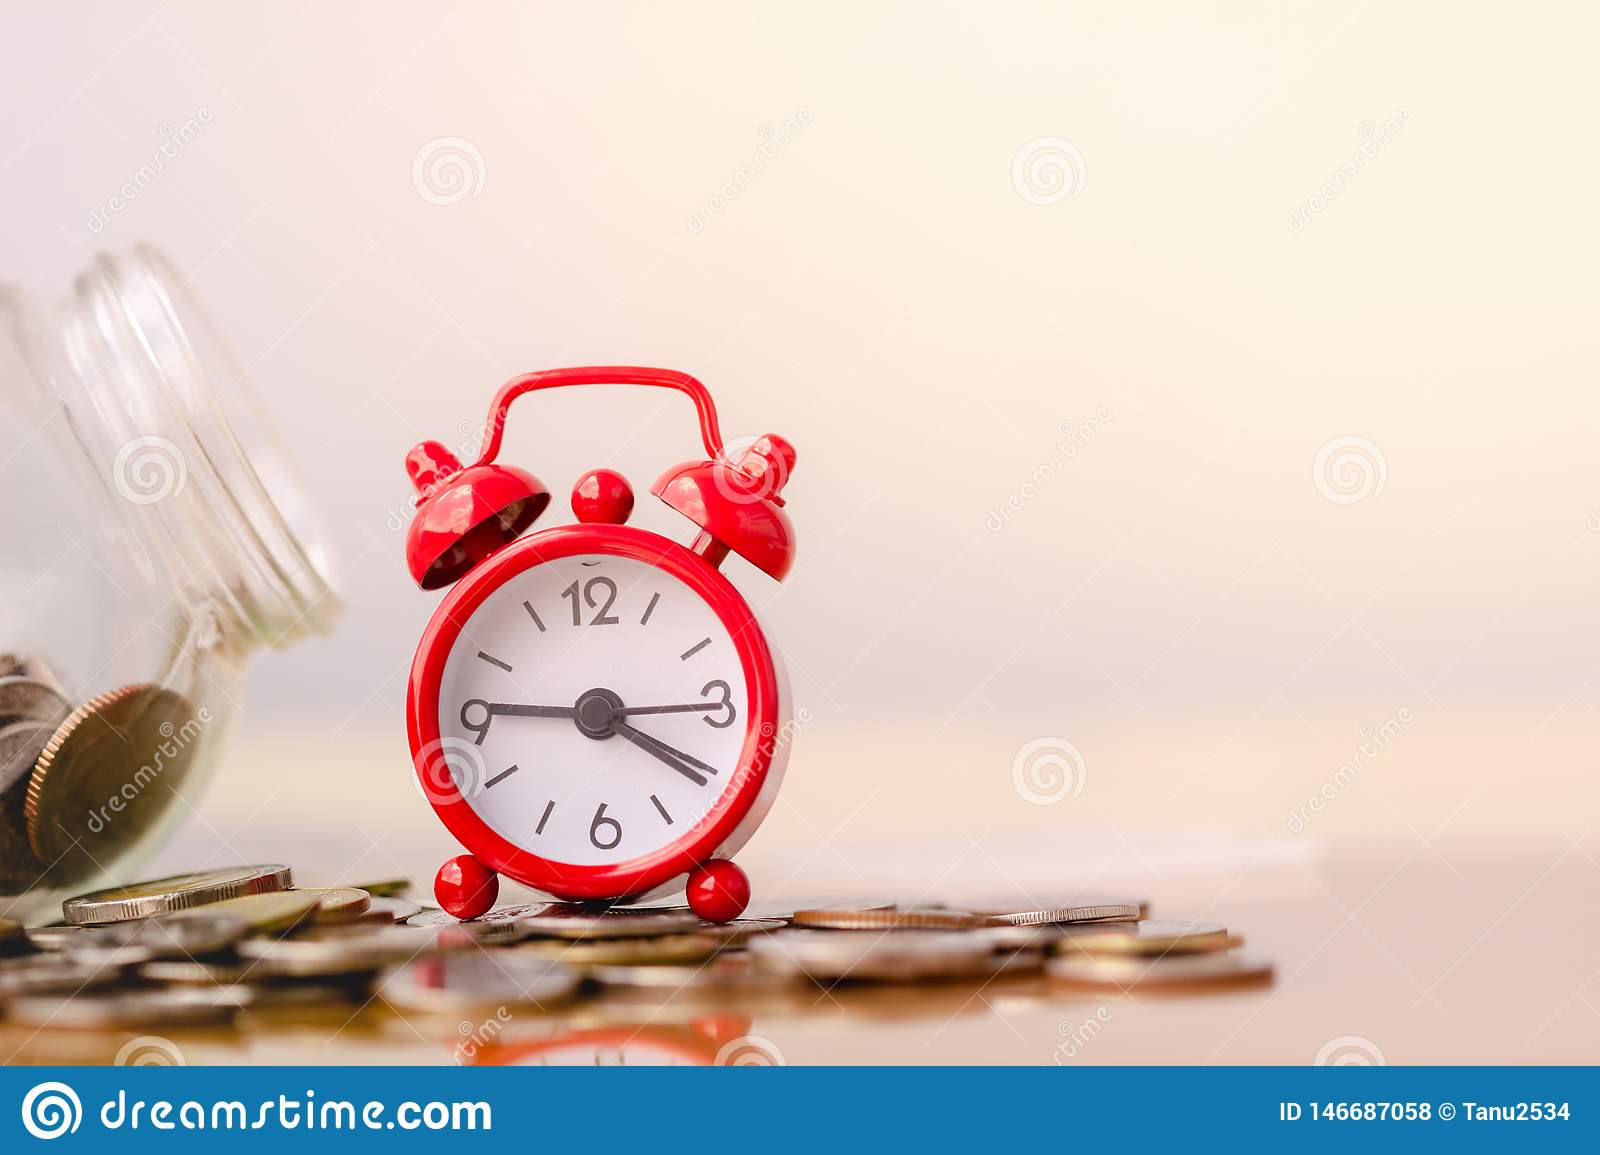 Red alarm clock on stack of coins in concept of savings and money growing or energy save. Business investment growth concept.